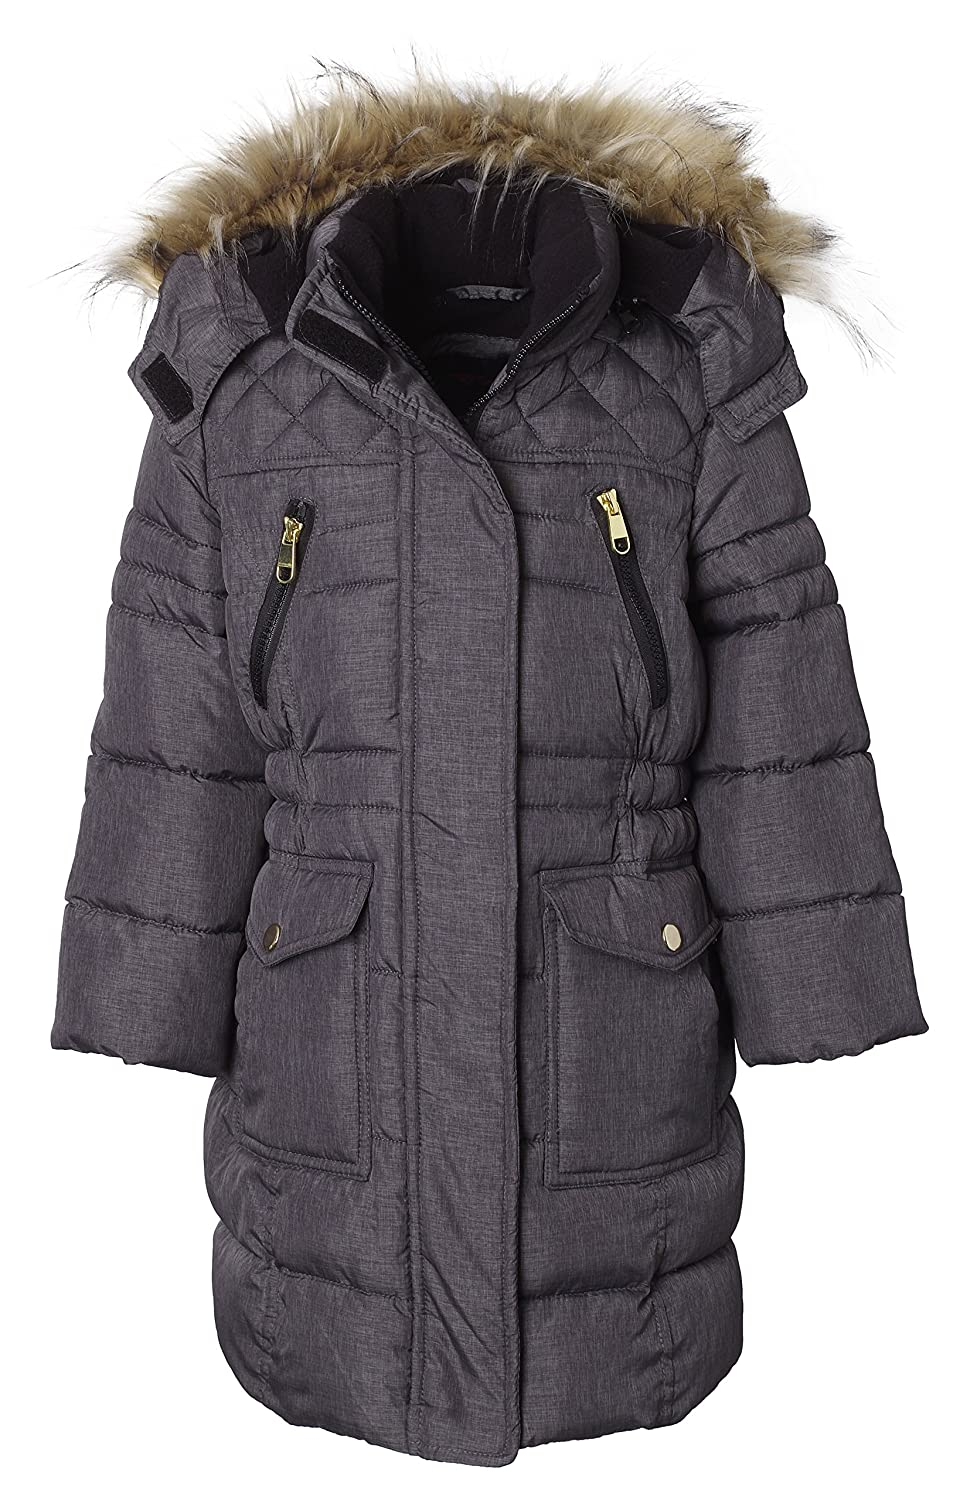 Sportoli Girls' Heavy Quilt Long Fleece Lined Padded Puffer Coat with Fleece Lined Detachable Hood